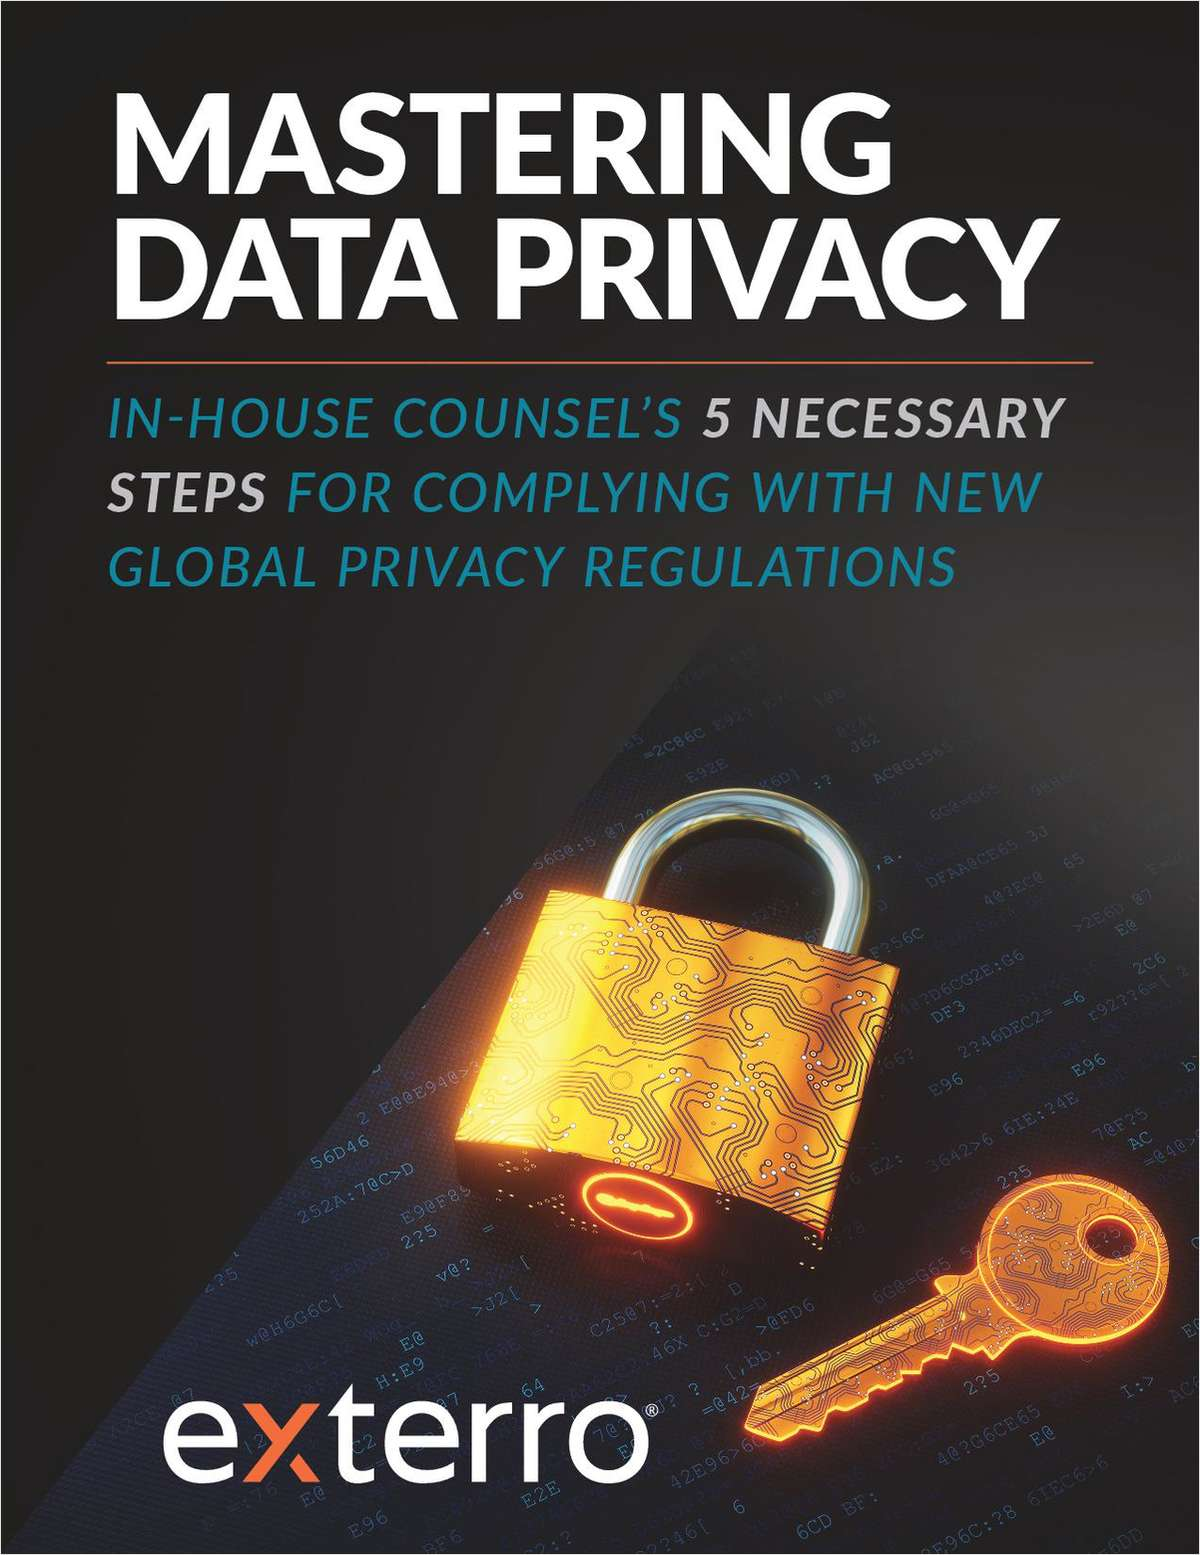 Mastering Data Privacy: 5 Steps for Complying with New Global Privacy Regulations